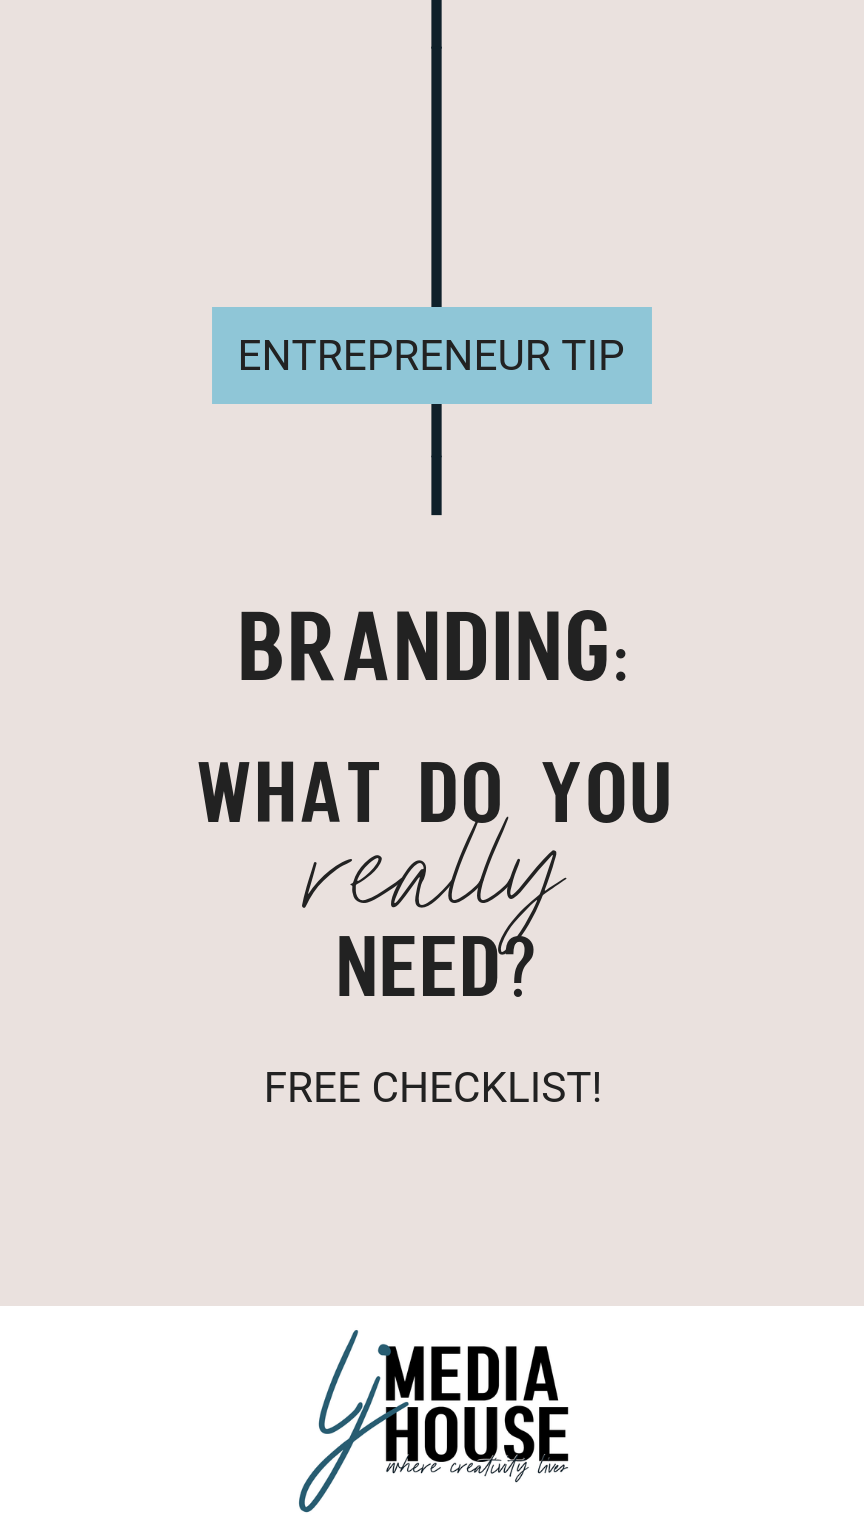 Branding: What do you really need?